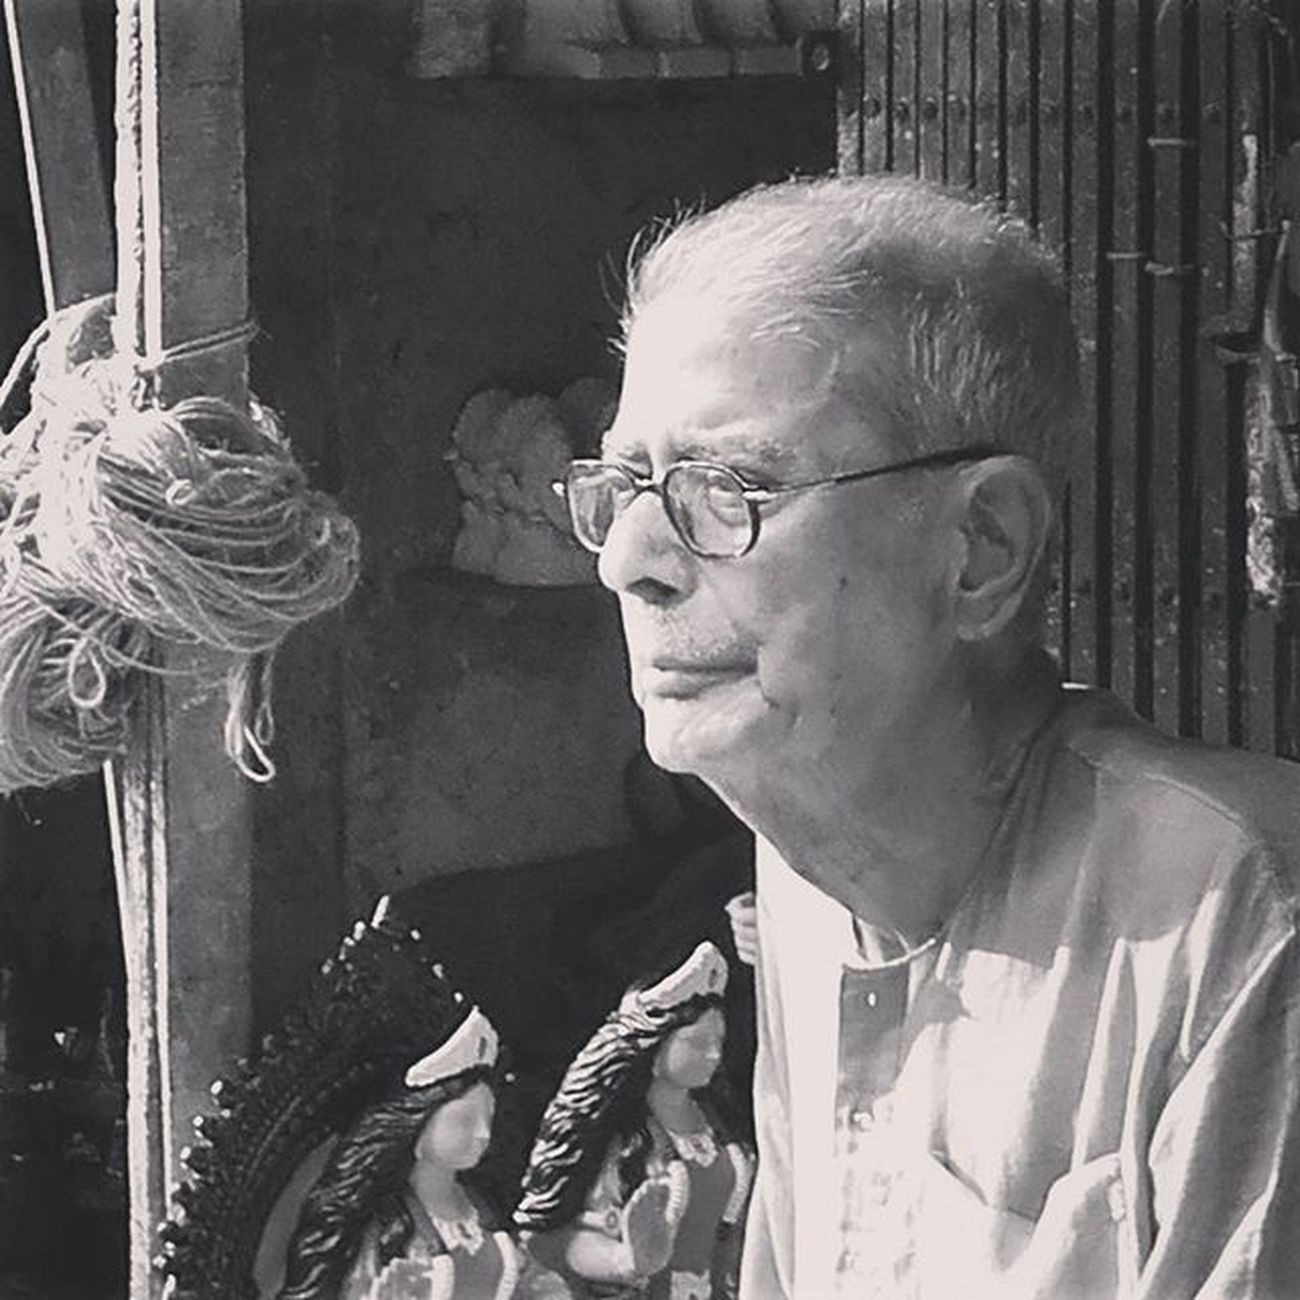 """When Grace is joined with wrinkles, it is adorable. There is unspeakable dawn in happy old age"". ~ Victor Hugo. . . . Oldage Retro Wrinkles Wrinkledsoles Wrinkledface FacesofCalcutta HumansofCalcutta Calcutta _cic Calcuttacacophony Bnw Bnw_captures Bnw_india Indiapictures India_clicks Instagram Capturingindia Monochromeindia Sokolkata Pother_pechali"